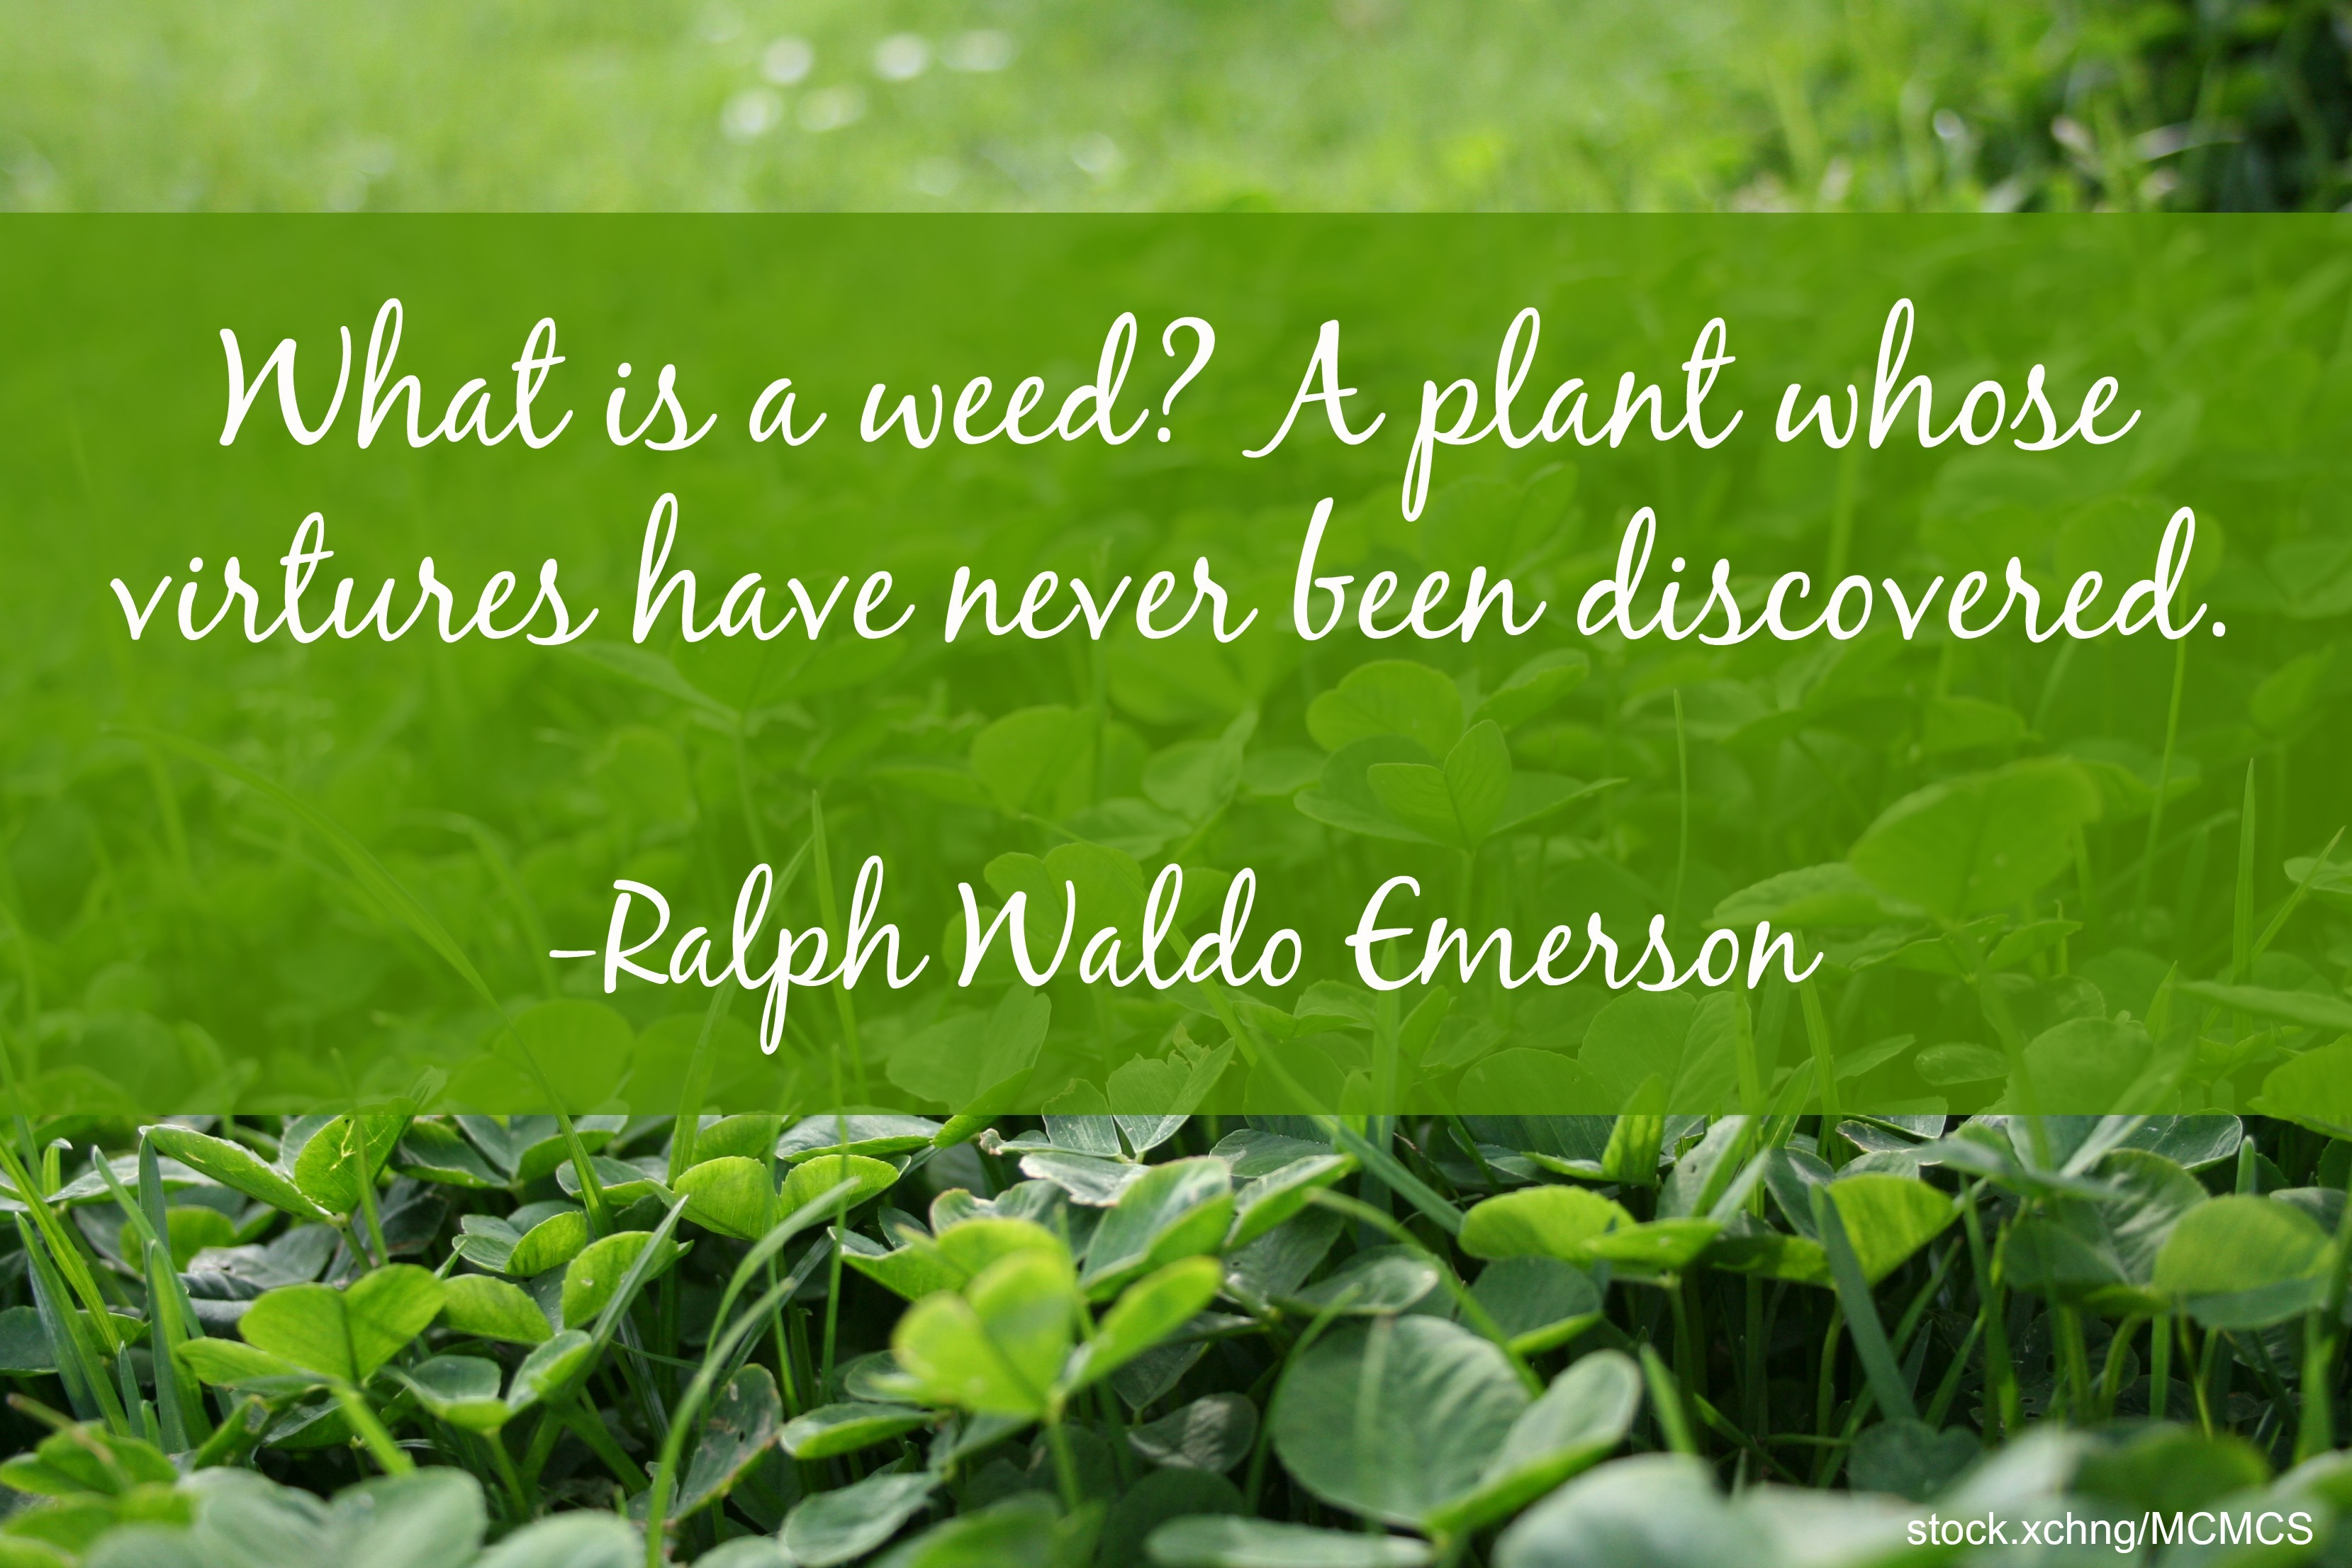 weed quote Ralph Waldo Emerson